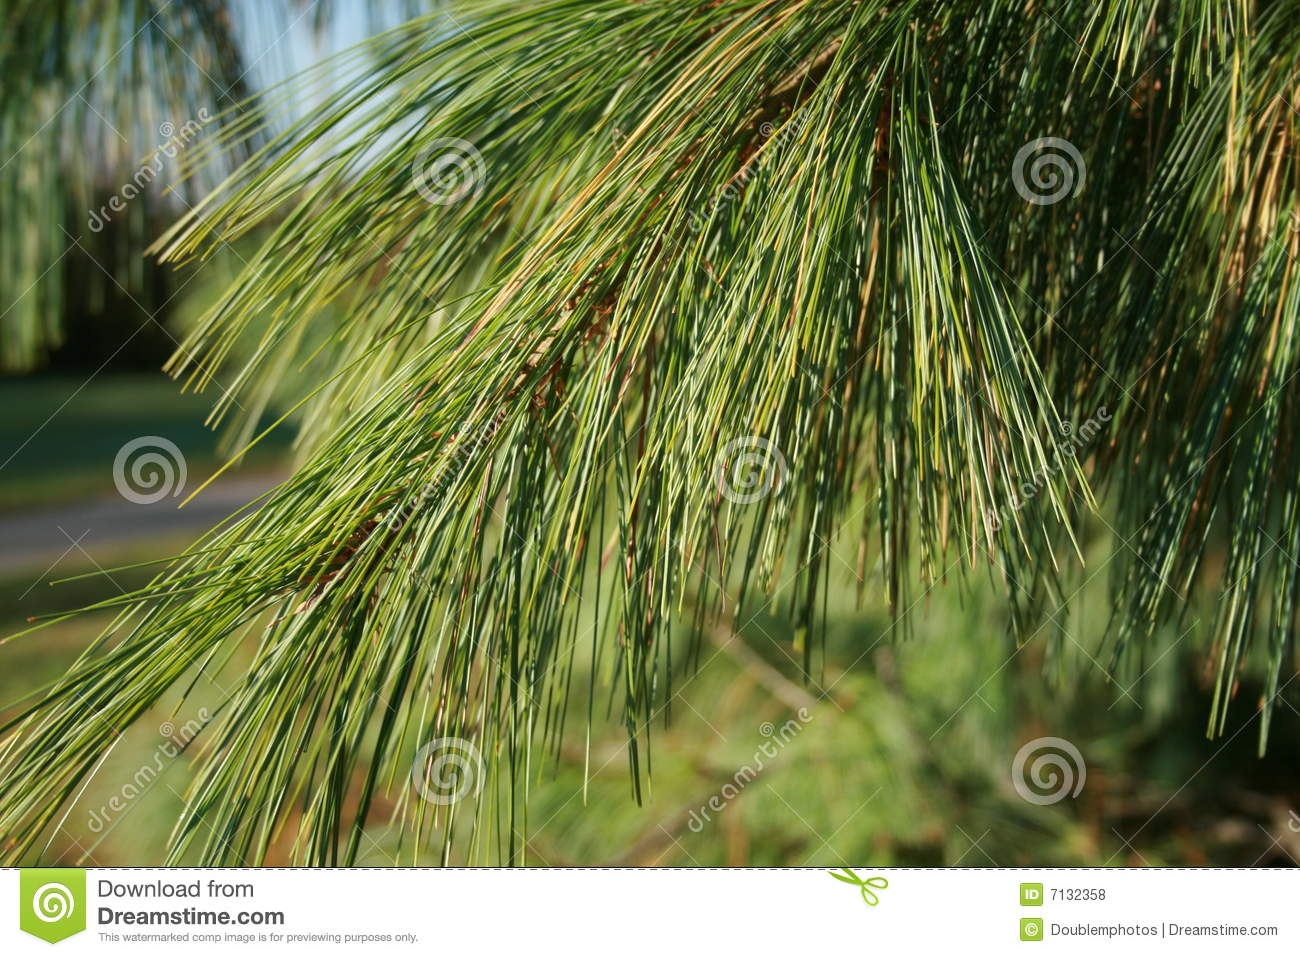 Pine Tree Royalty Free Stock Photos - Image: 7132358